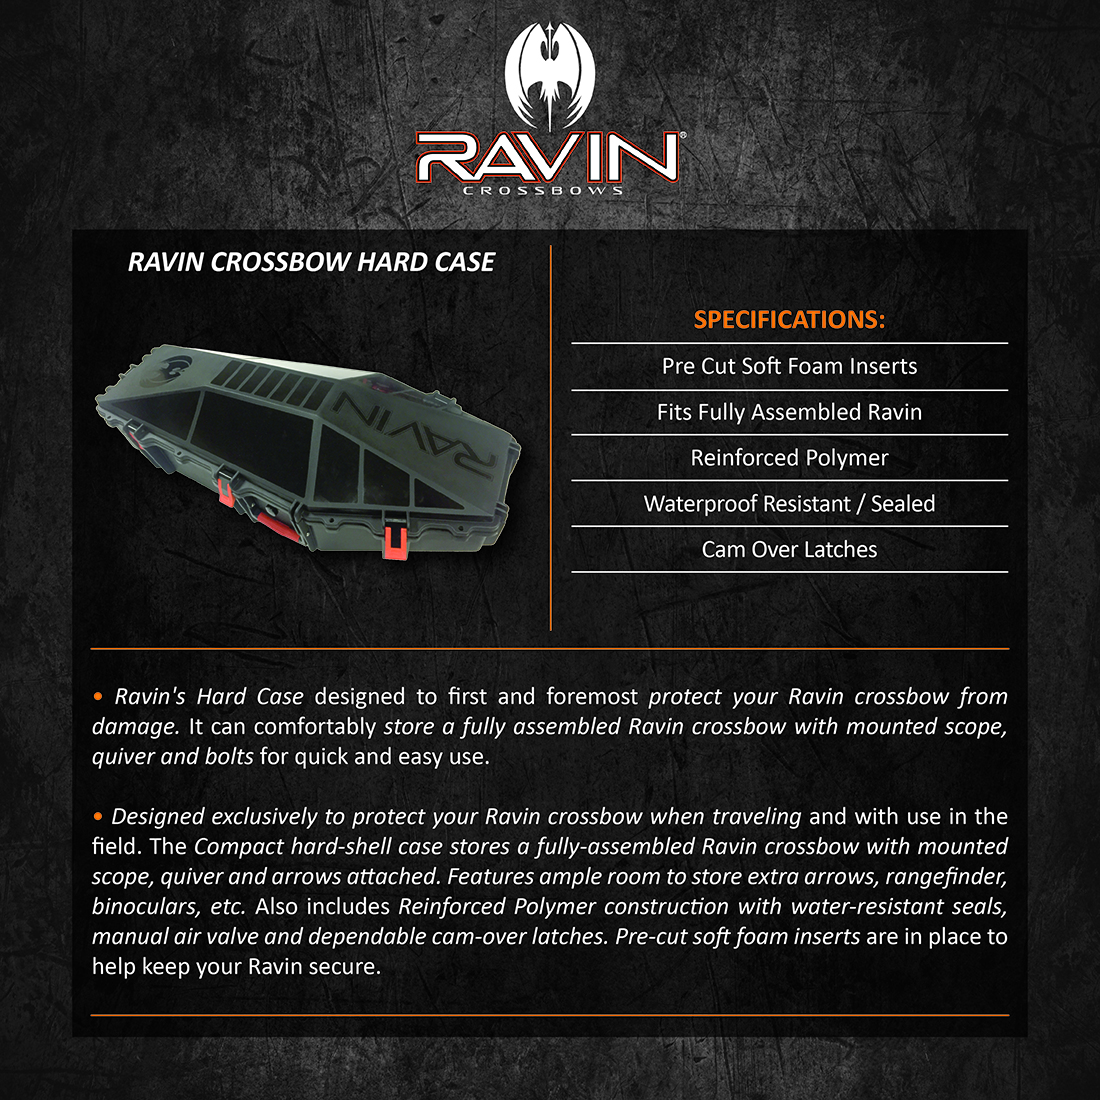 Ravin_Crossbow_Hard_Case_Product_Description